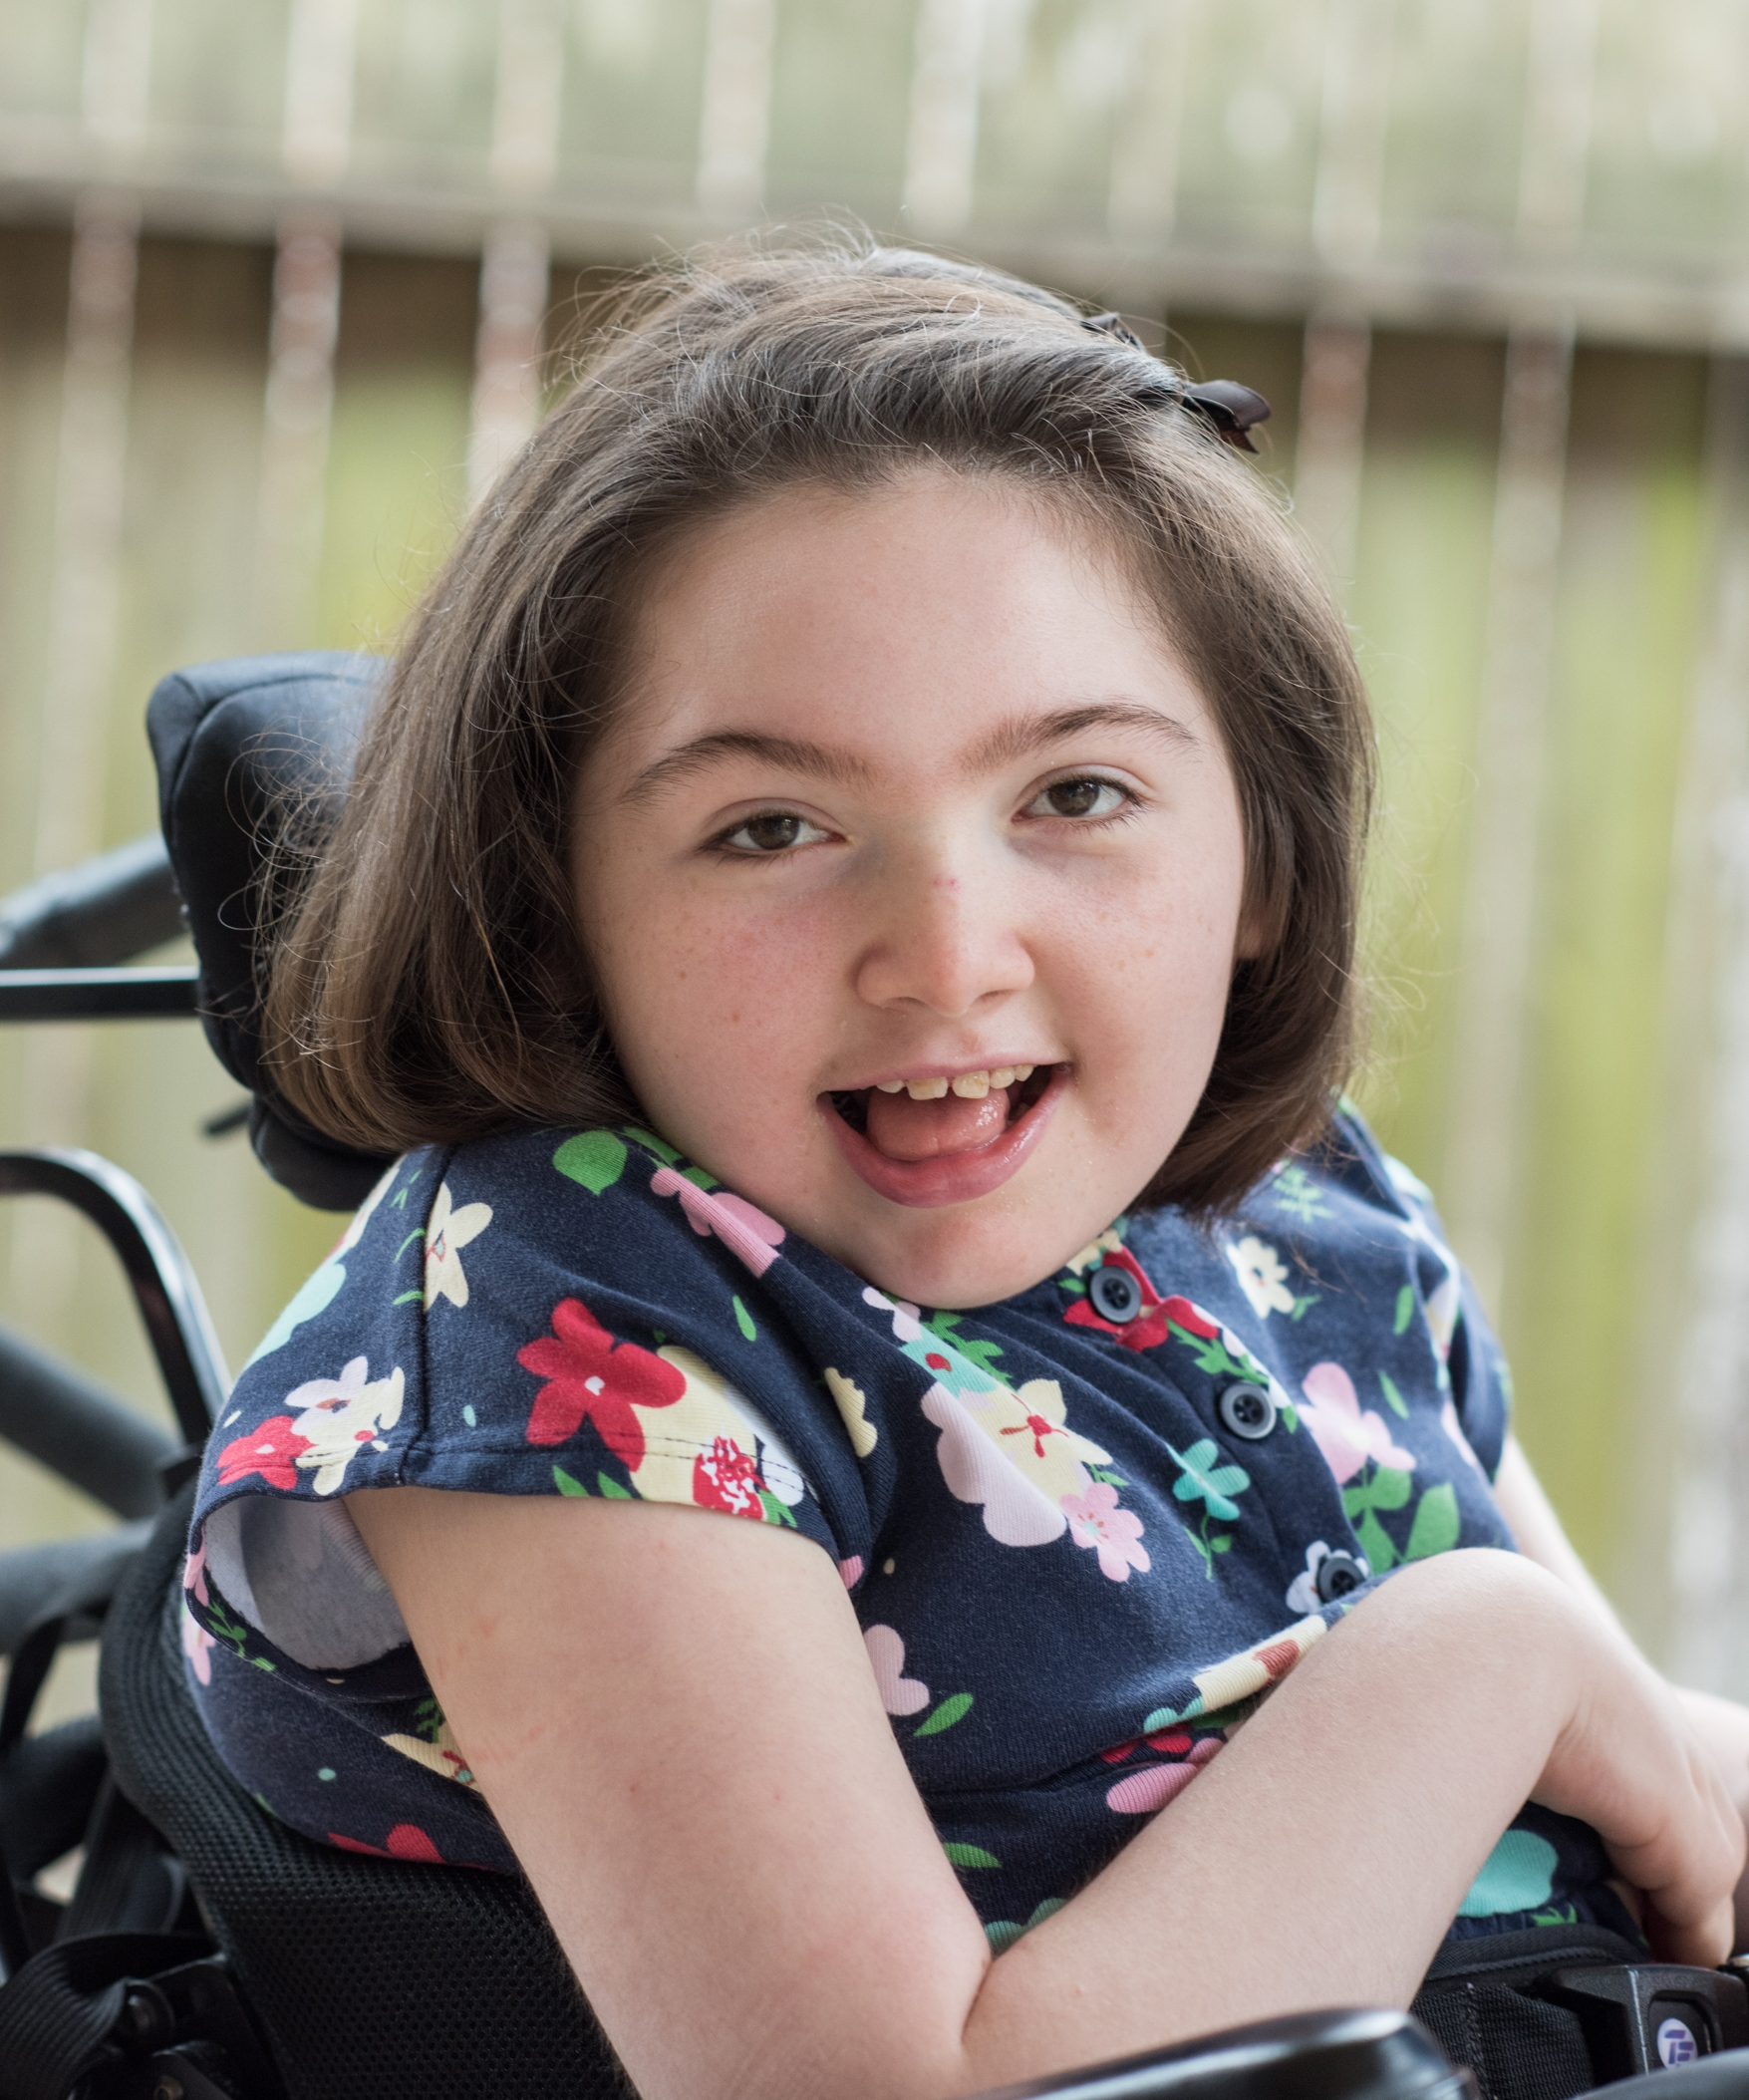 Rachael  has a special champion: country music star Clint Black. The singer-songwriter's life has been touched by Rett syndrome through his niece who also had the condition and he   raises awareness of the disorder     to help girls like Rachael.